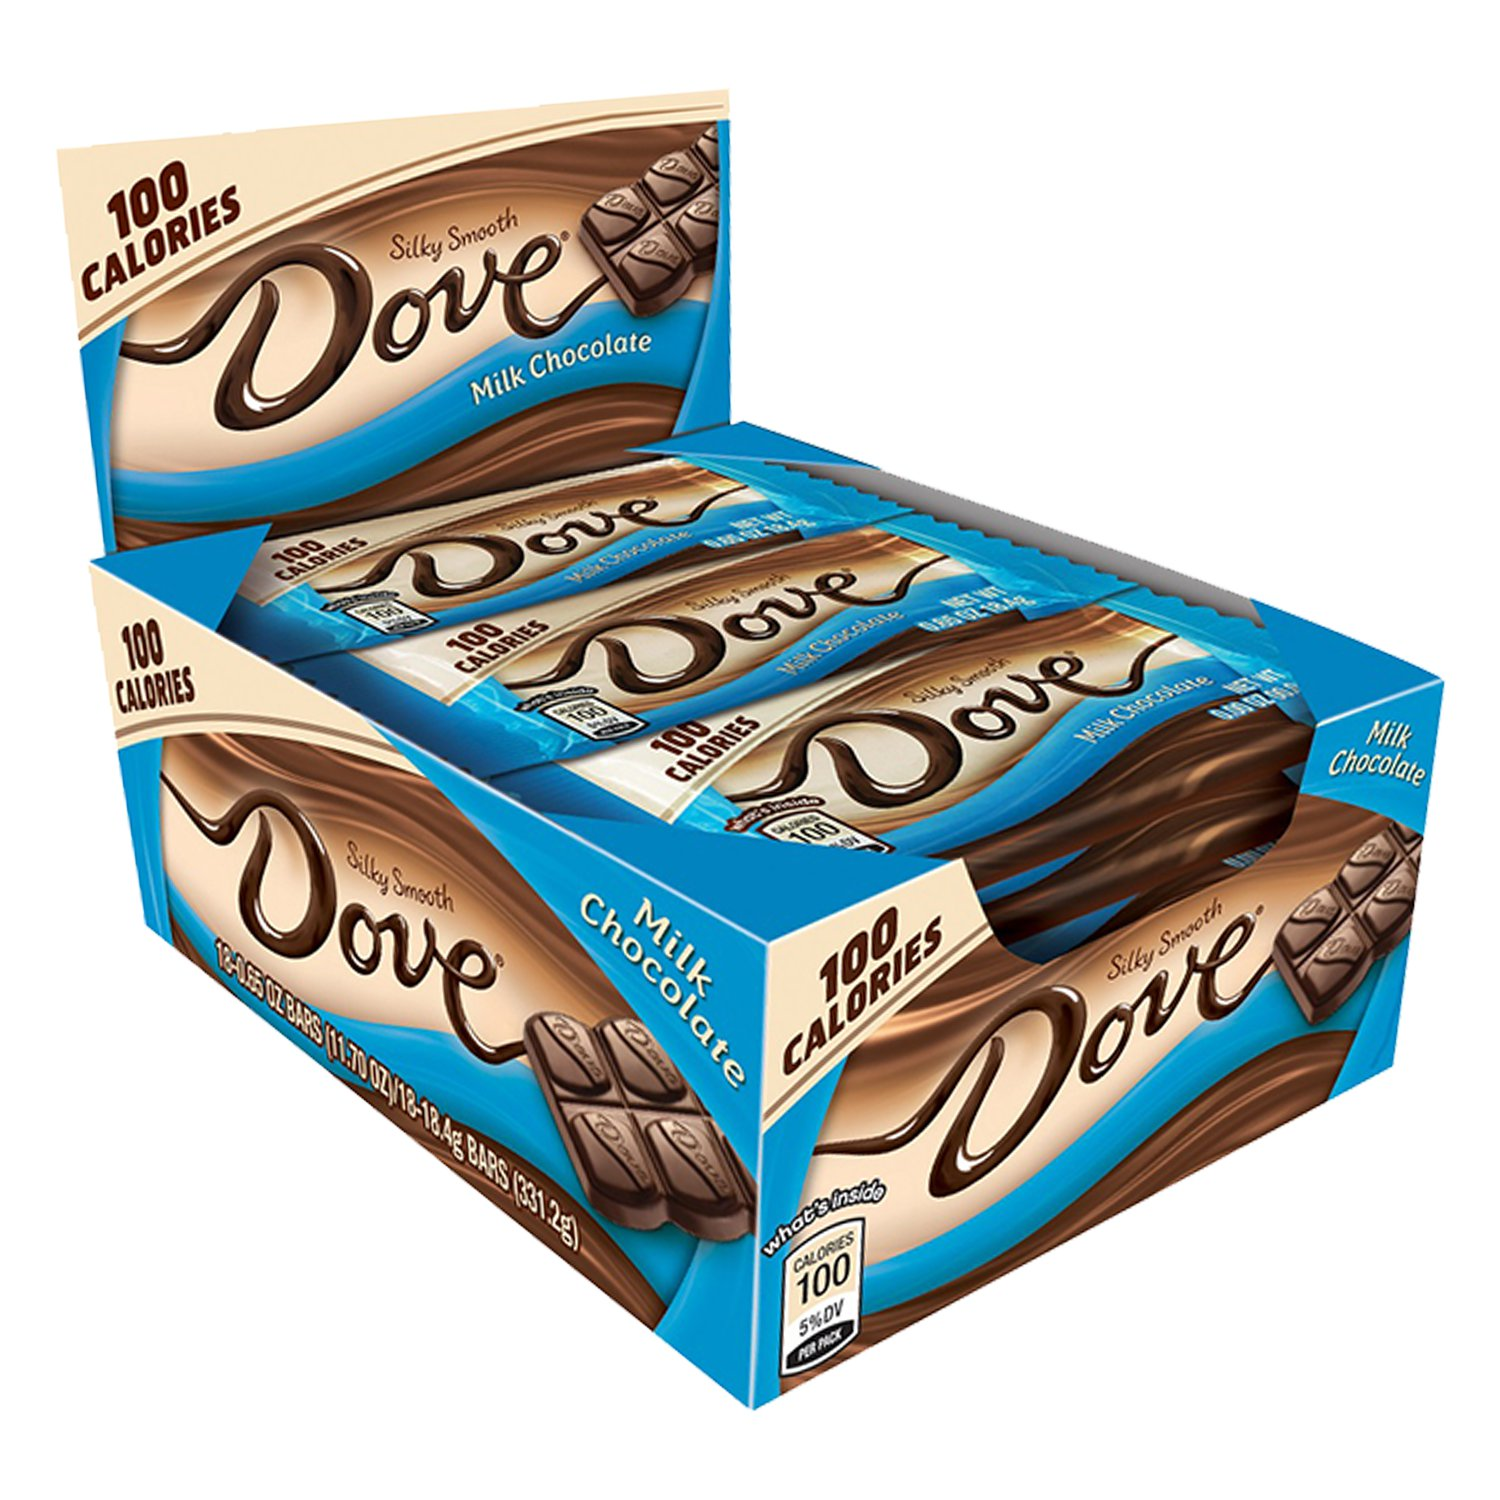 (2 Pack) Dove, Silky Smooth Milk Chocolate Candy Bars, 0.65 Oz, 18 Ct